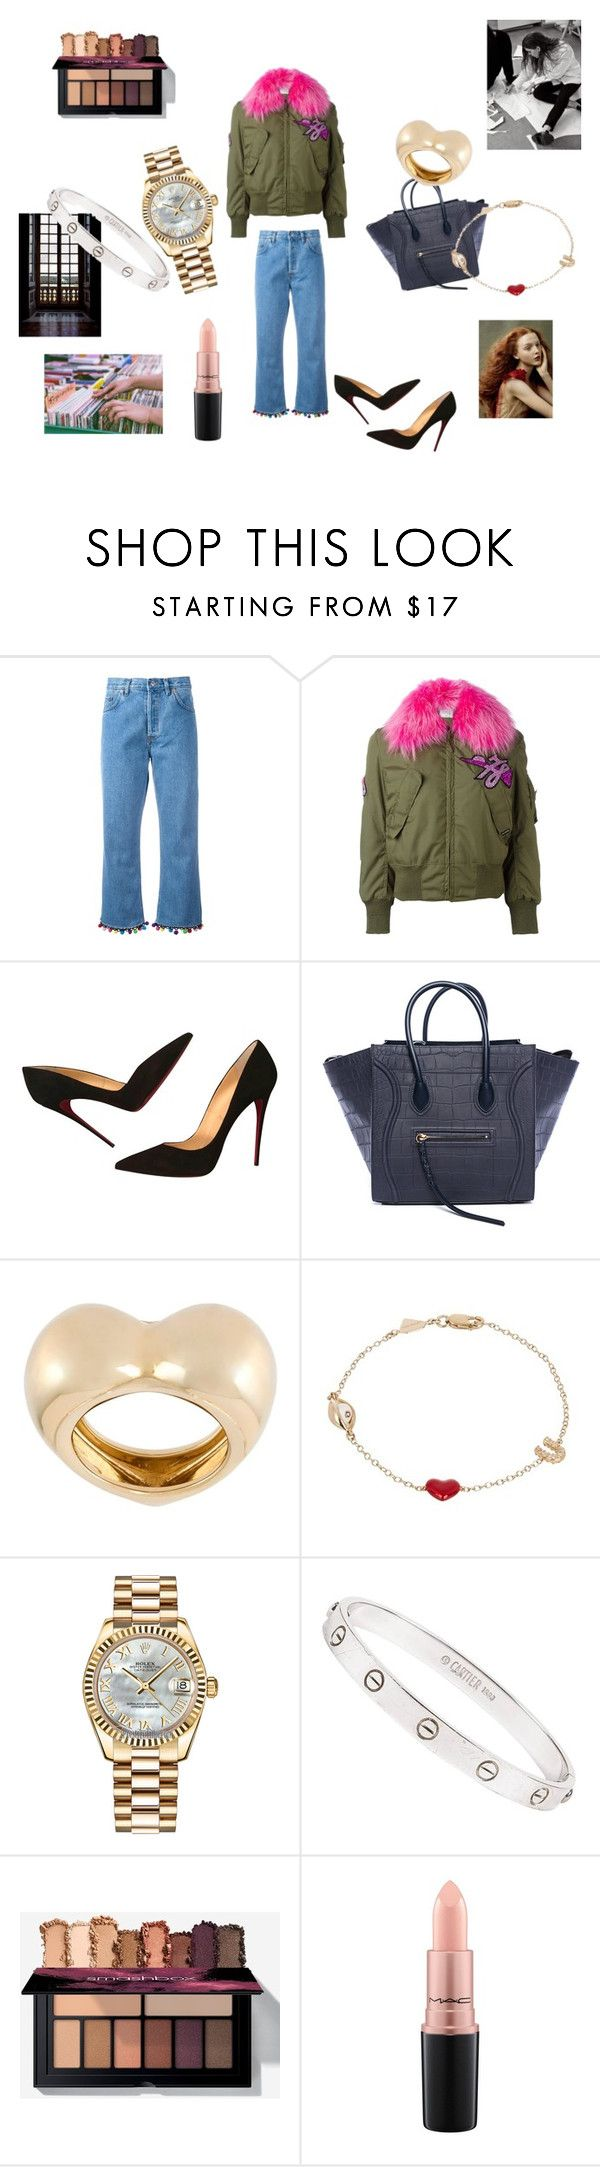 """""""Homey"""" by maria-chamourlidou ❤ liked on Polyvore featuring Forte Couture, Christian Louboutin, CÉLINE, Alison Lou, Rolex, Cartier and MAC Cosmetics"""